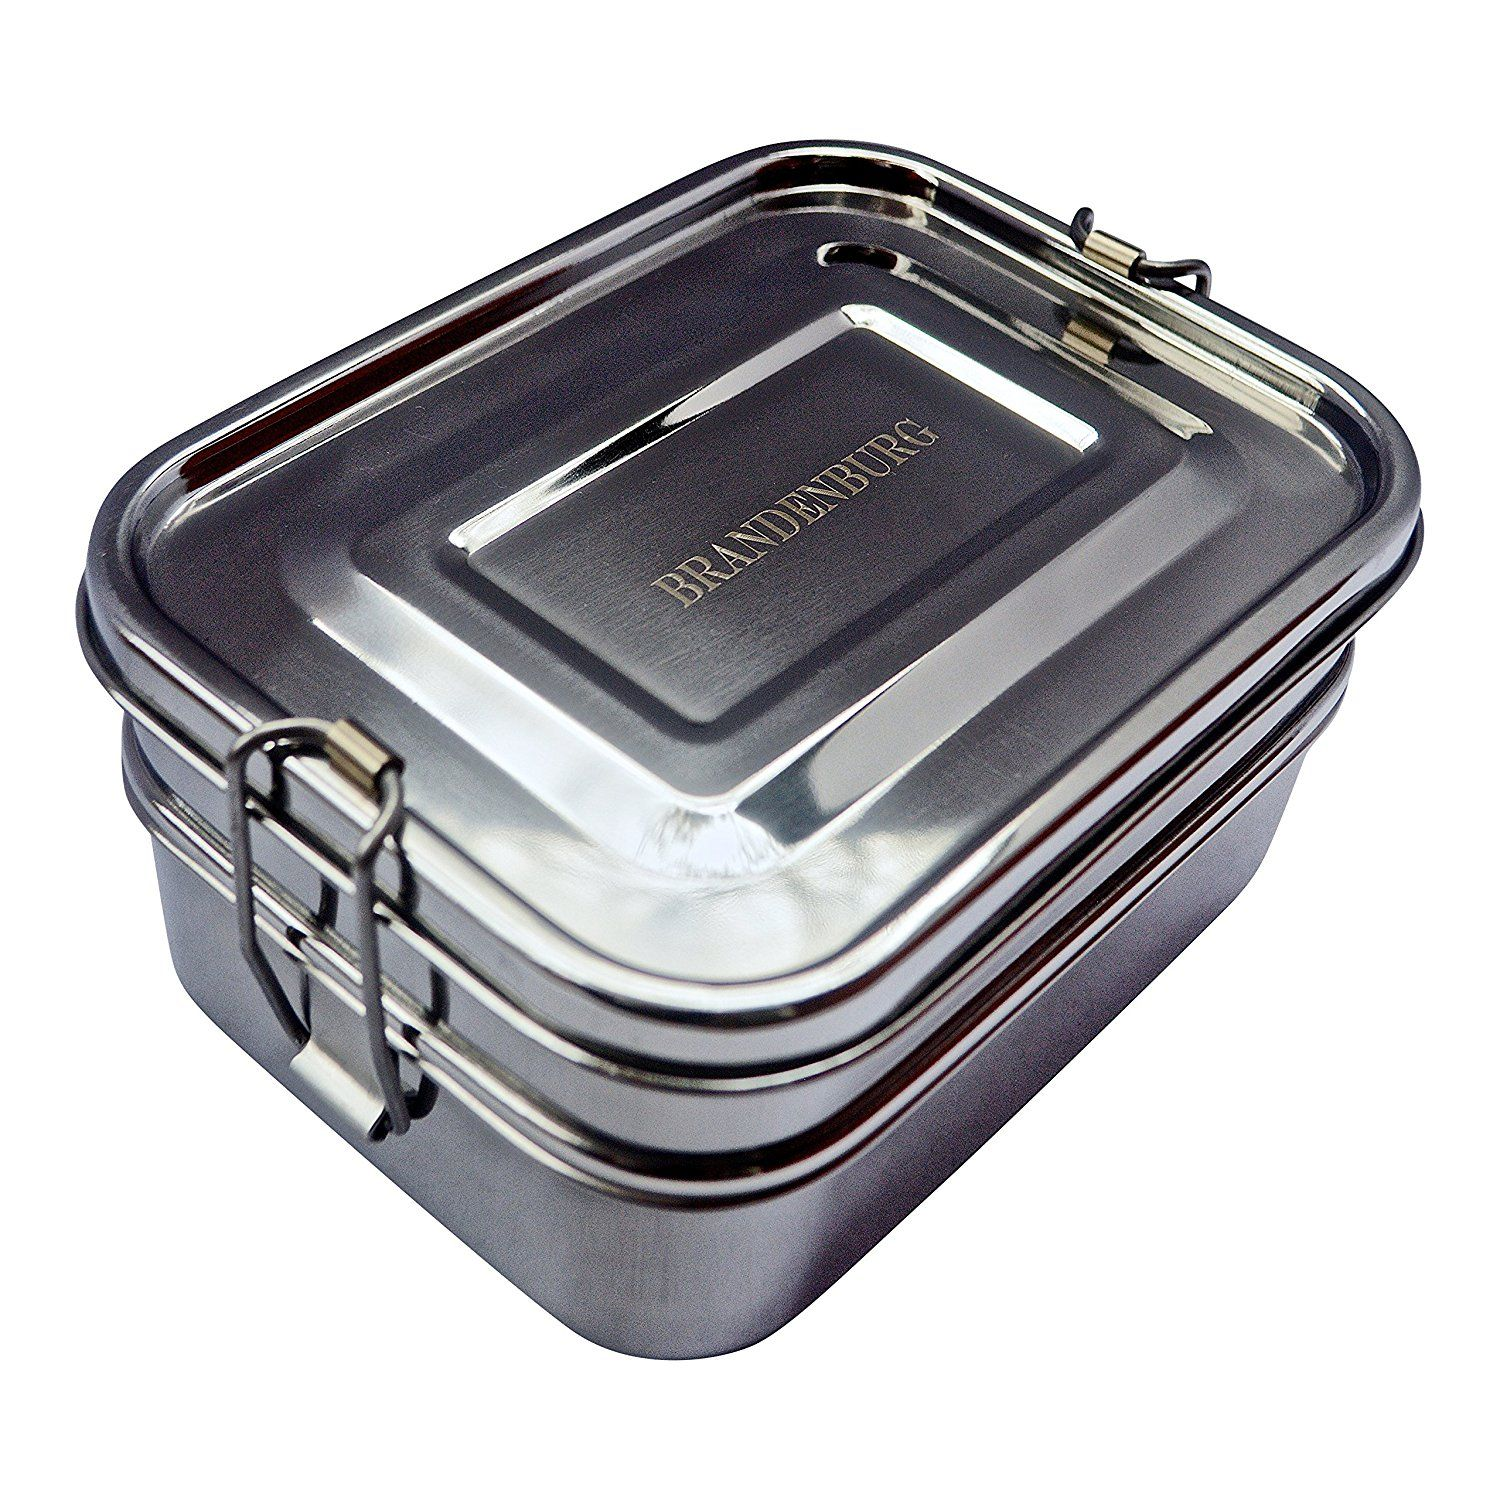 Amazon Com Brandenburg Classic Stainless Steel Bento Box Eco Friendly Lunch Box 3 In 1 F Stainless Steel Bento Box Stainless Steel Lunch Box Steel Lunch Box